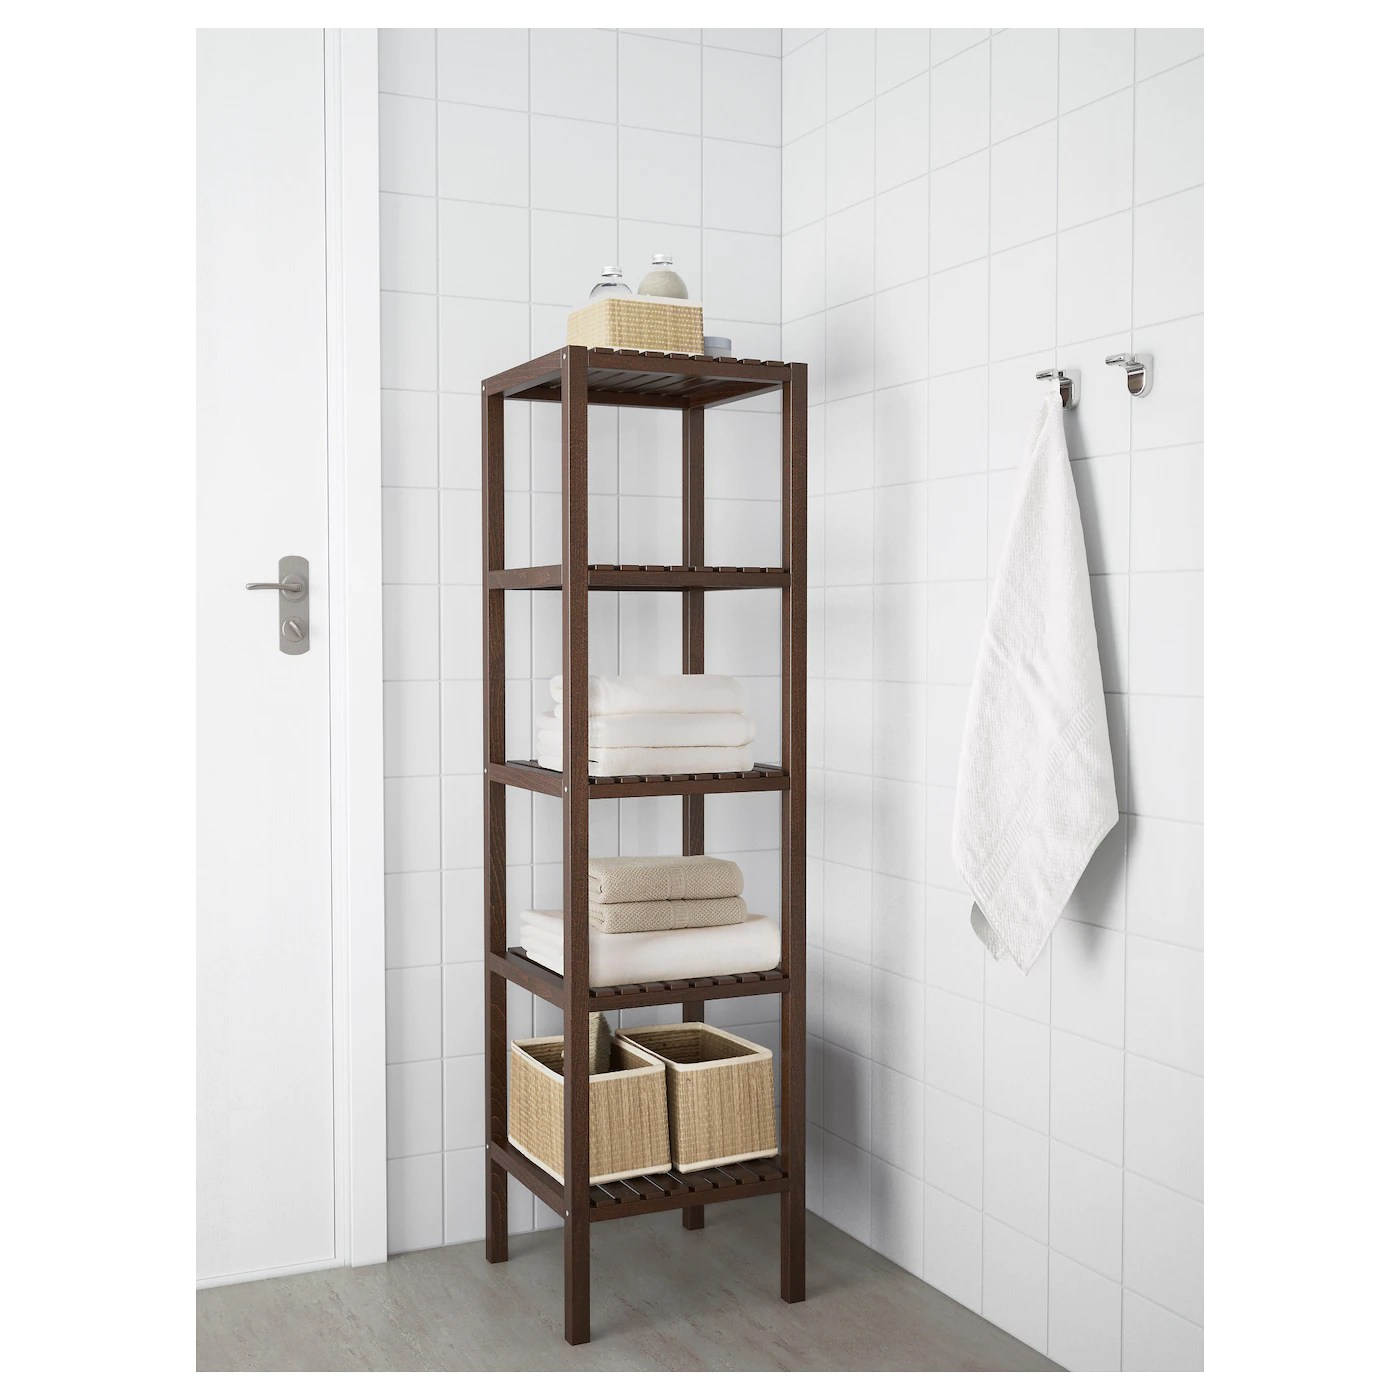 Ikea Badezimmer Regal Molger Molger Shelving Unit Dark Brown 37x140 Cm Ikea